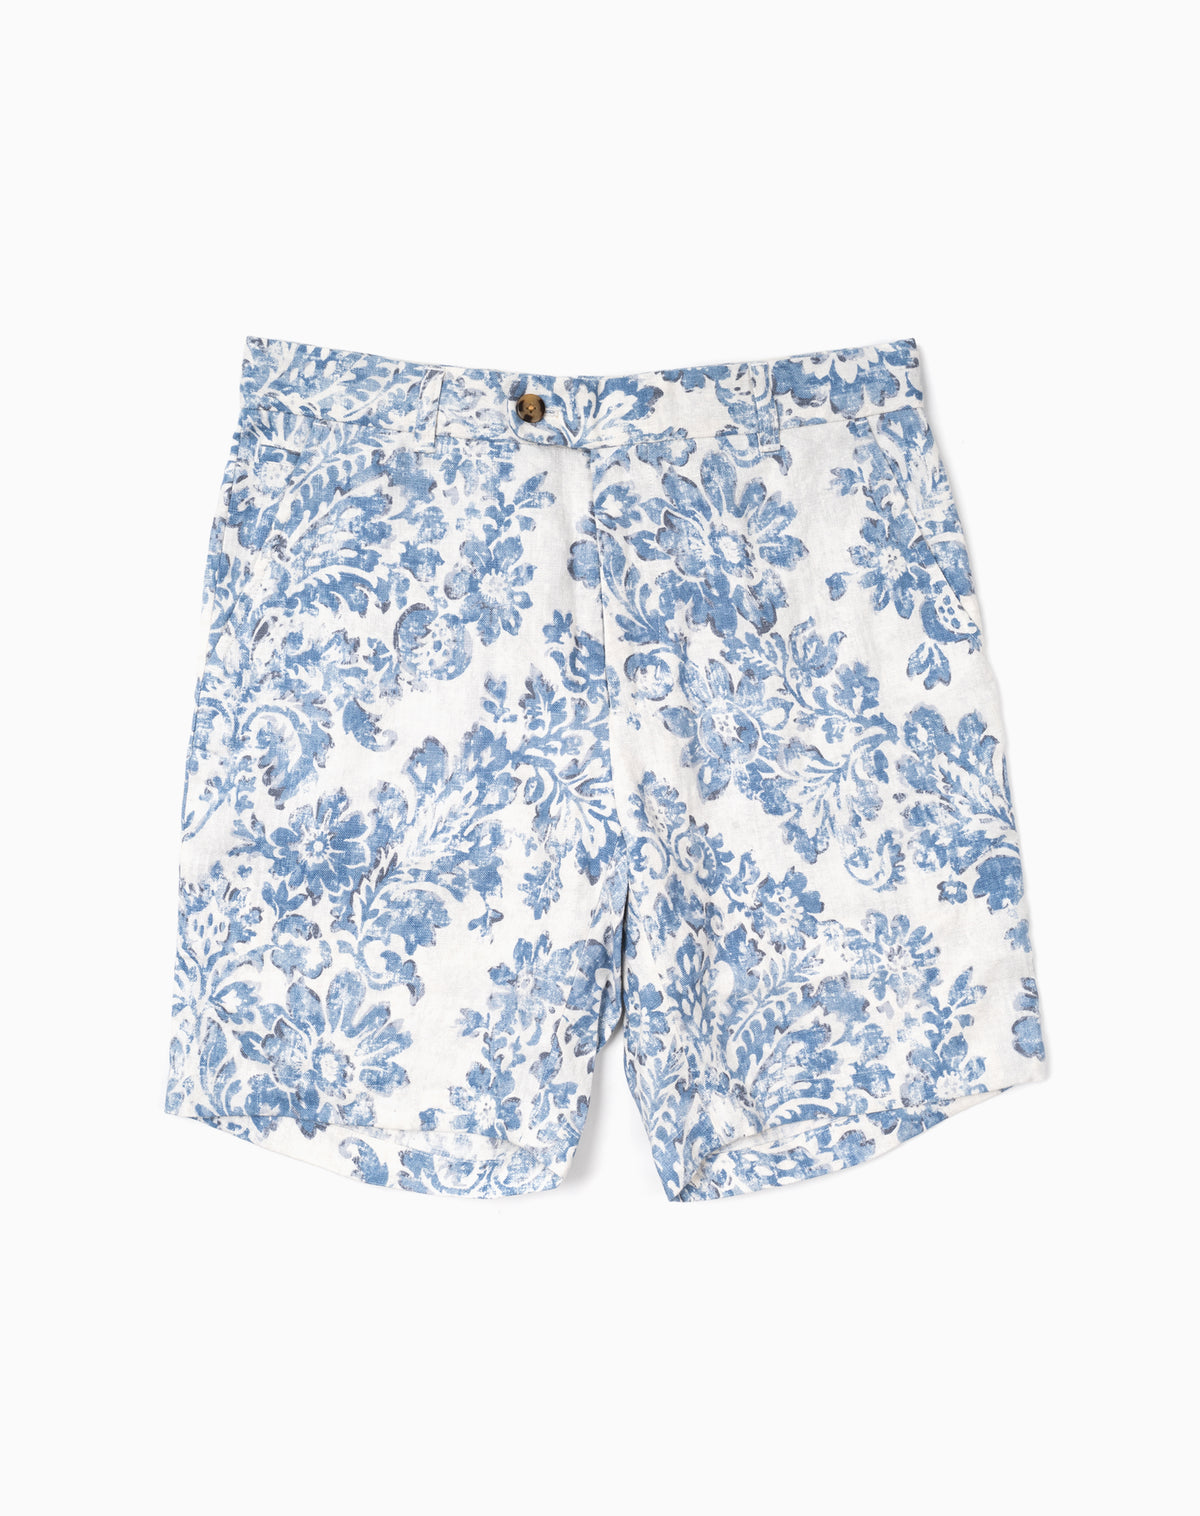 Printed Short in Blue Floral